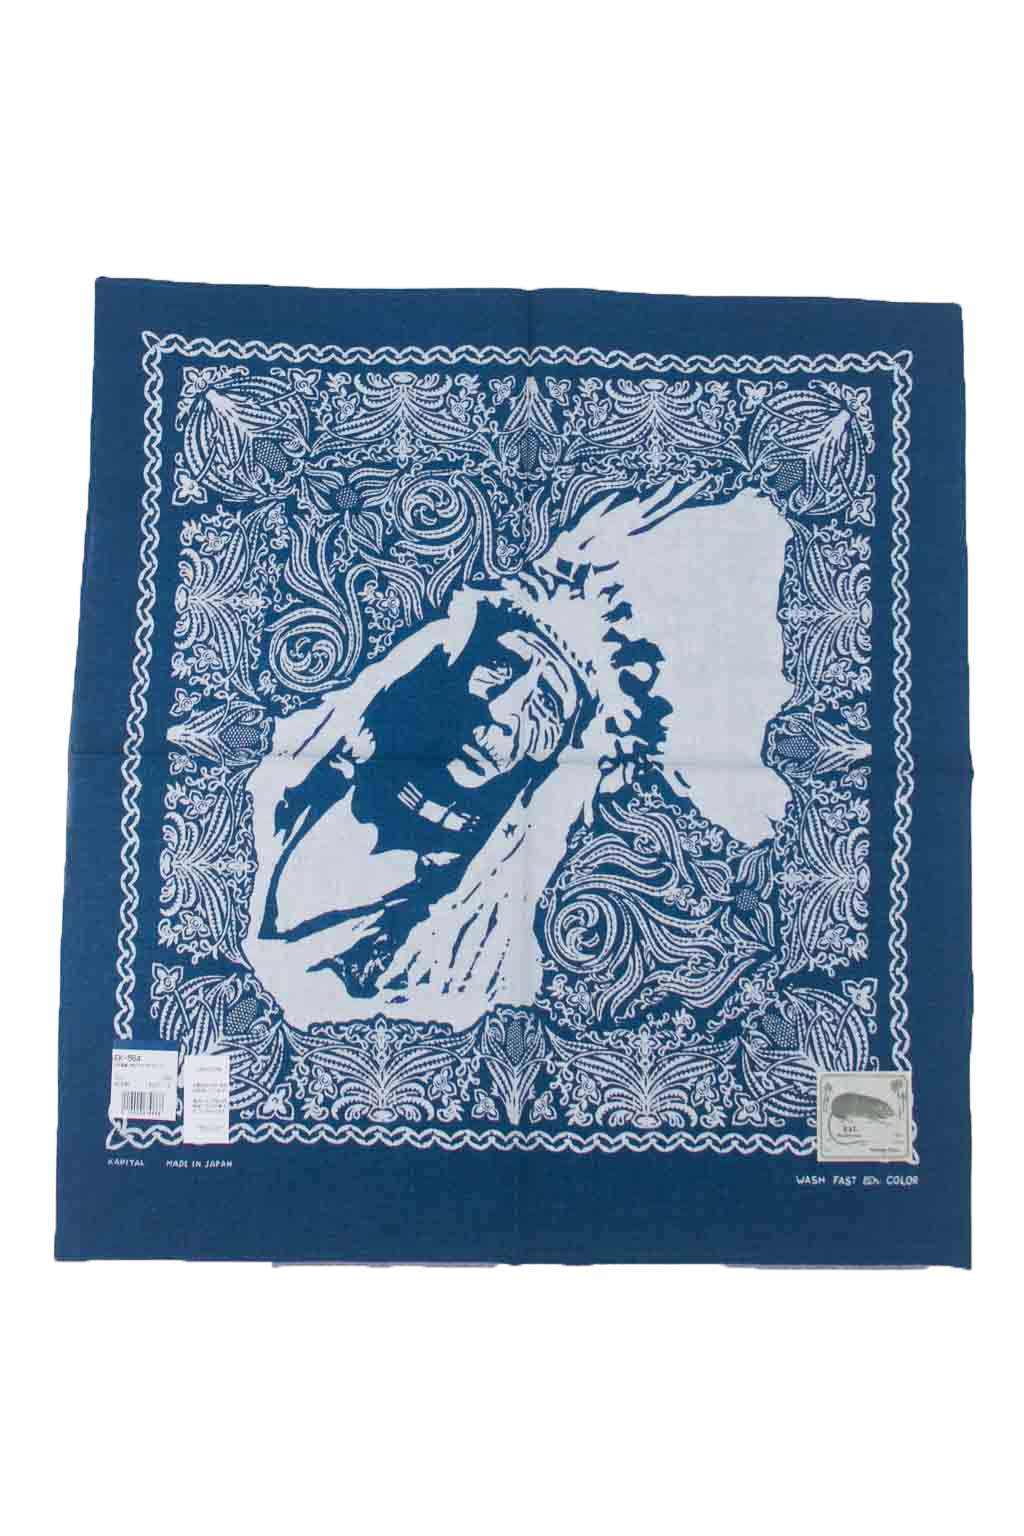 Indigo Dye Selvedge Bandana - Chief